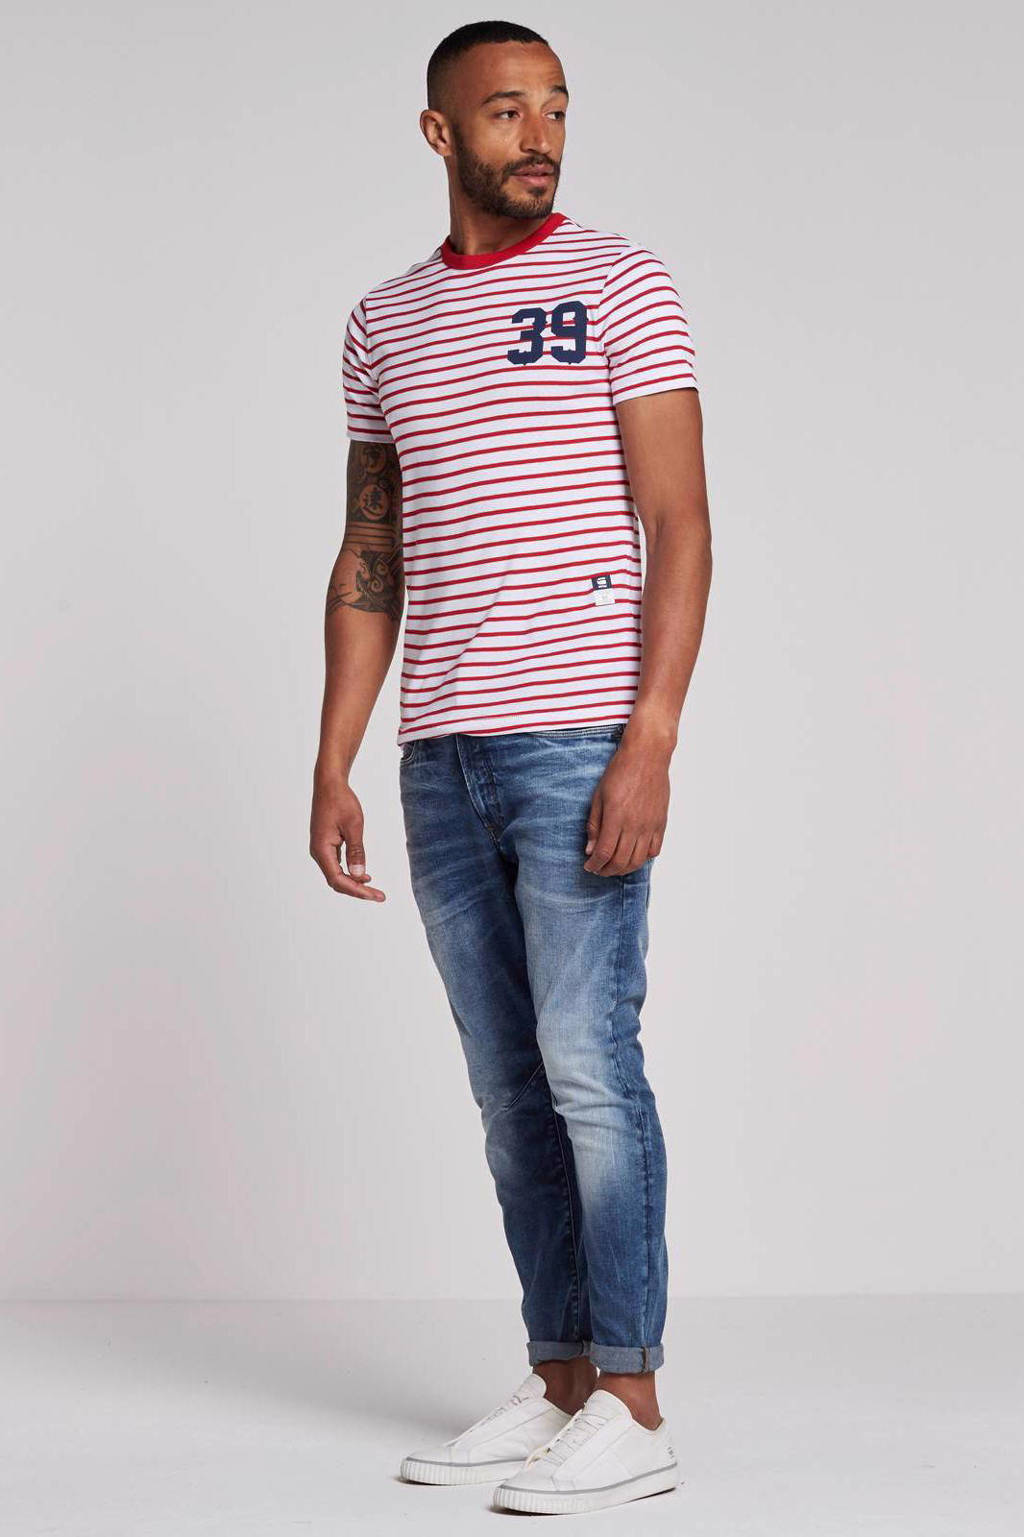 G-Star RAW T-shirt, Wit/rood